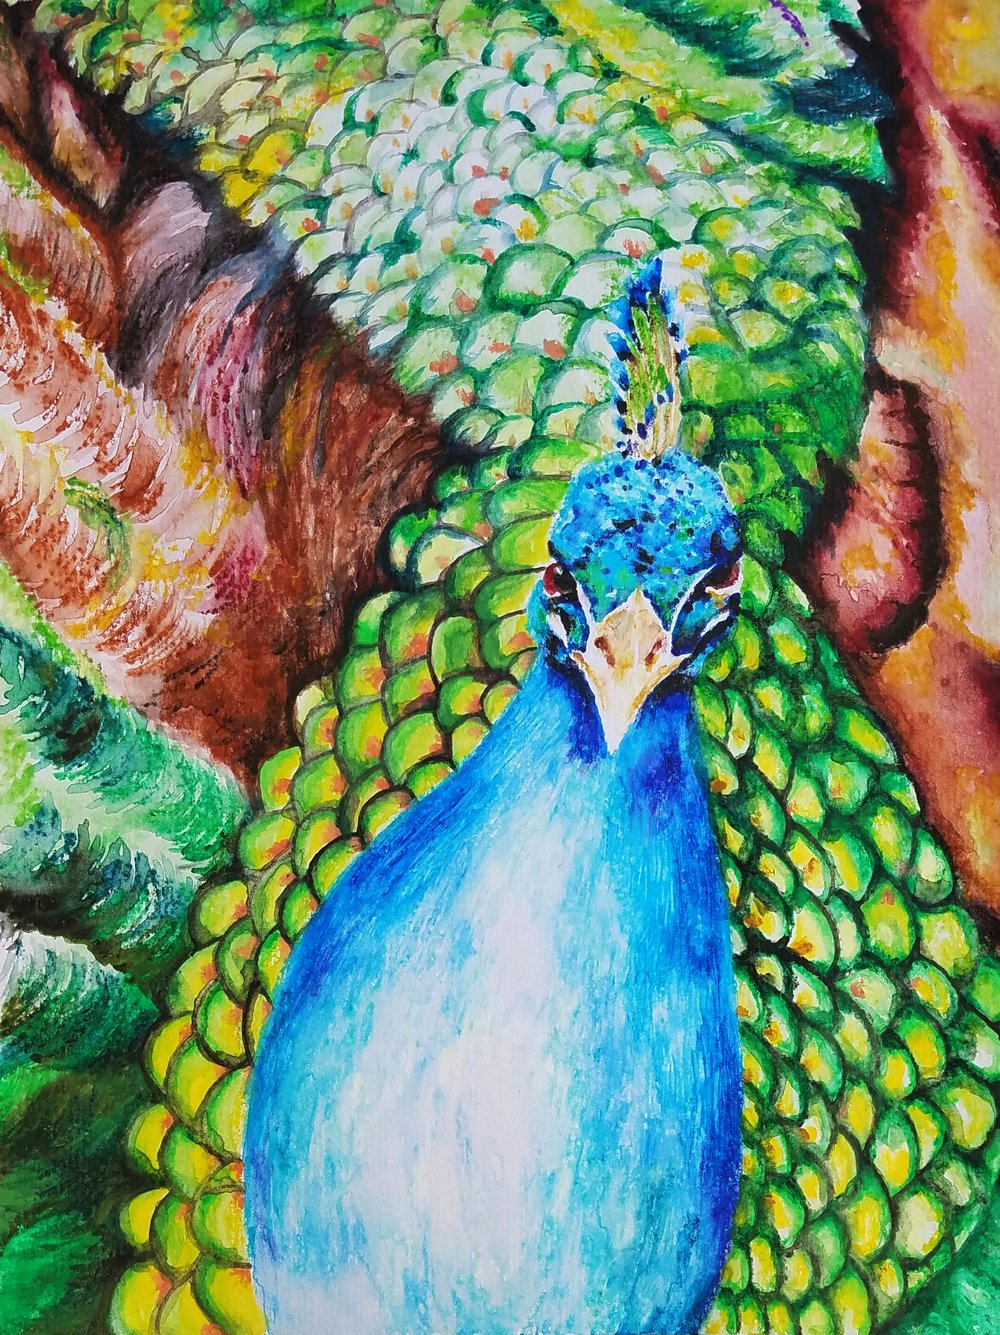 The Piquant Peacock - He's but a shimmer of plumes and feathers -A kaleidoscope of colors that seduce our eyes.